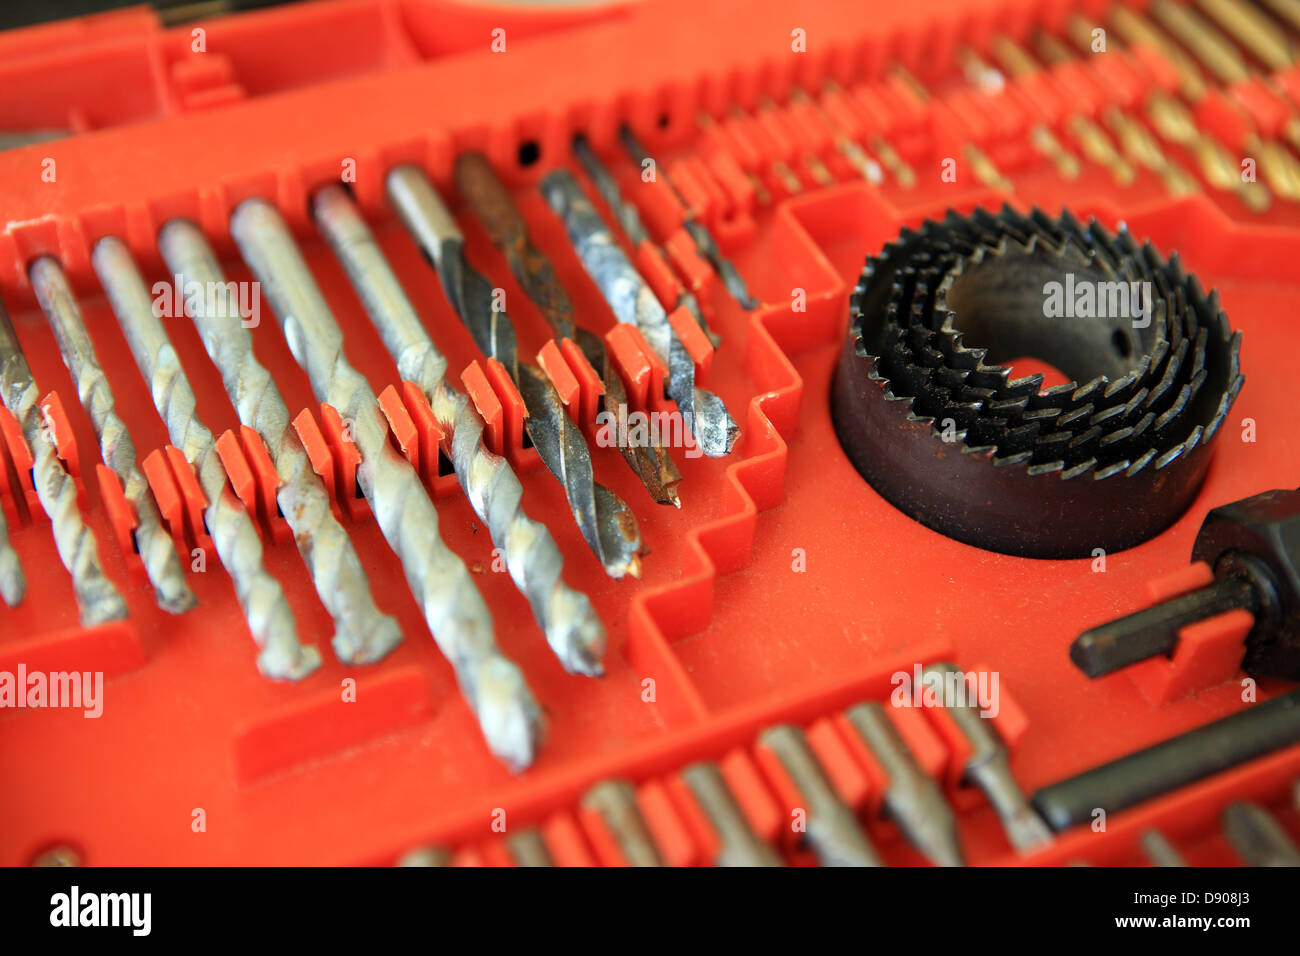 Drill bits inside a tool case - Stock Image